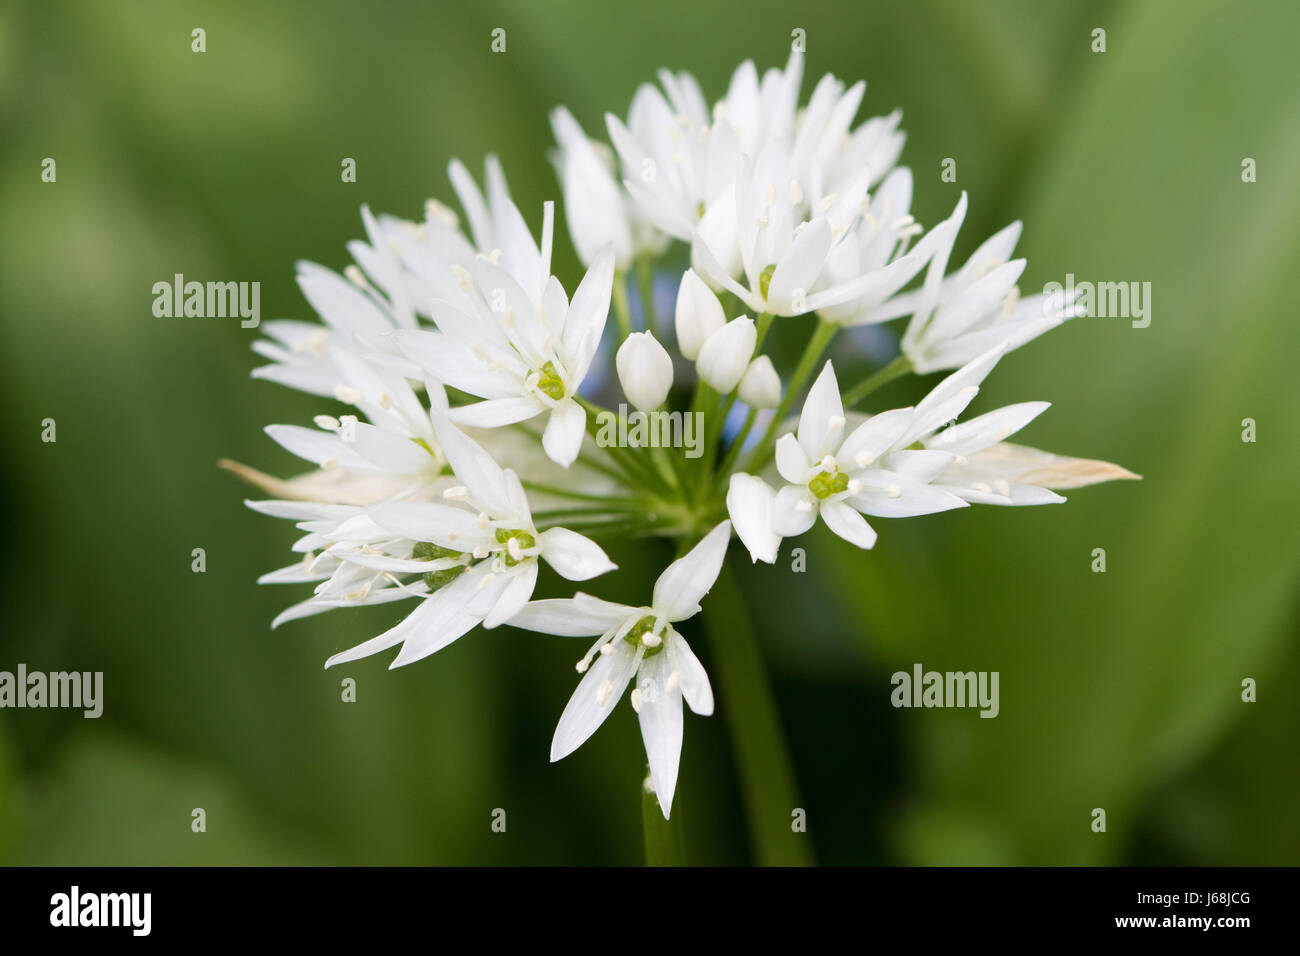 Ramsoms (Allium ursinum) flower - Stock Image